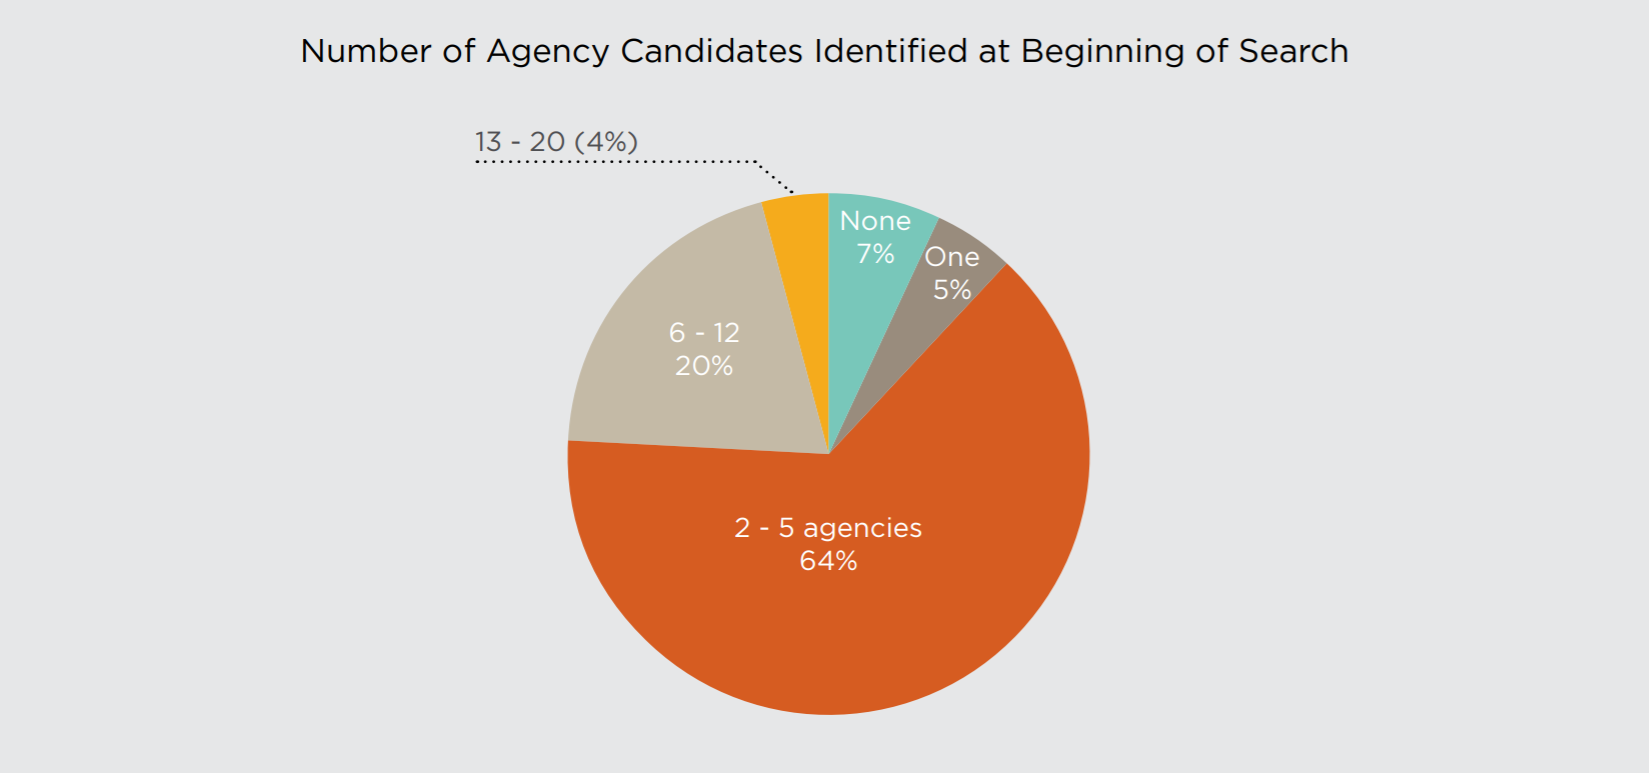 How many agencies do companies look for in an agency search?